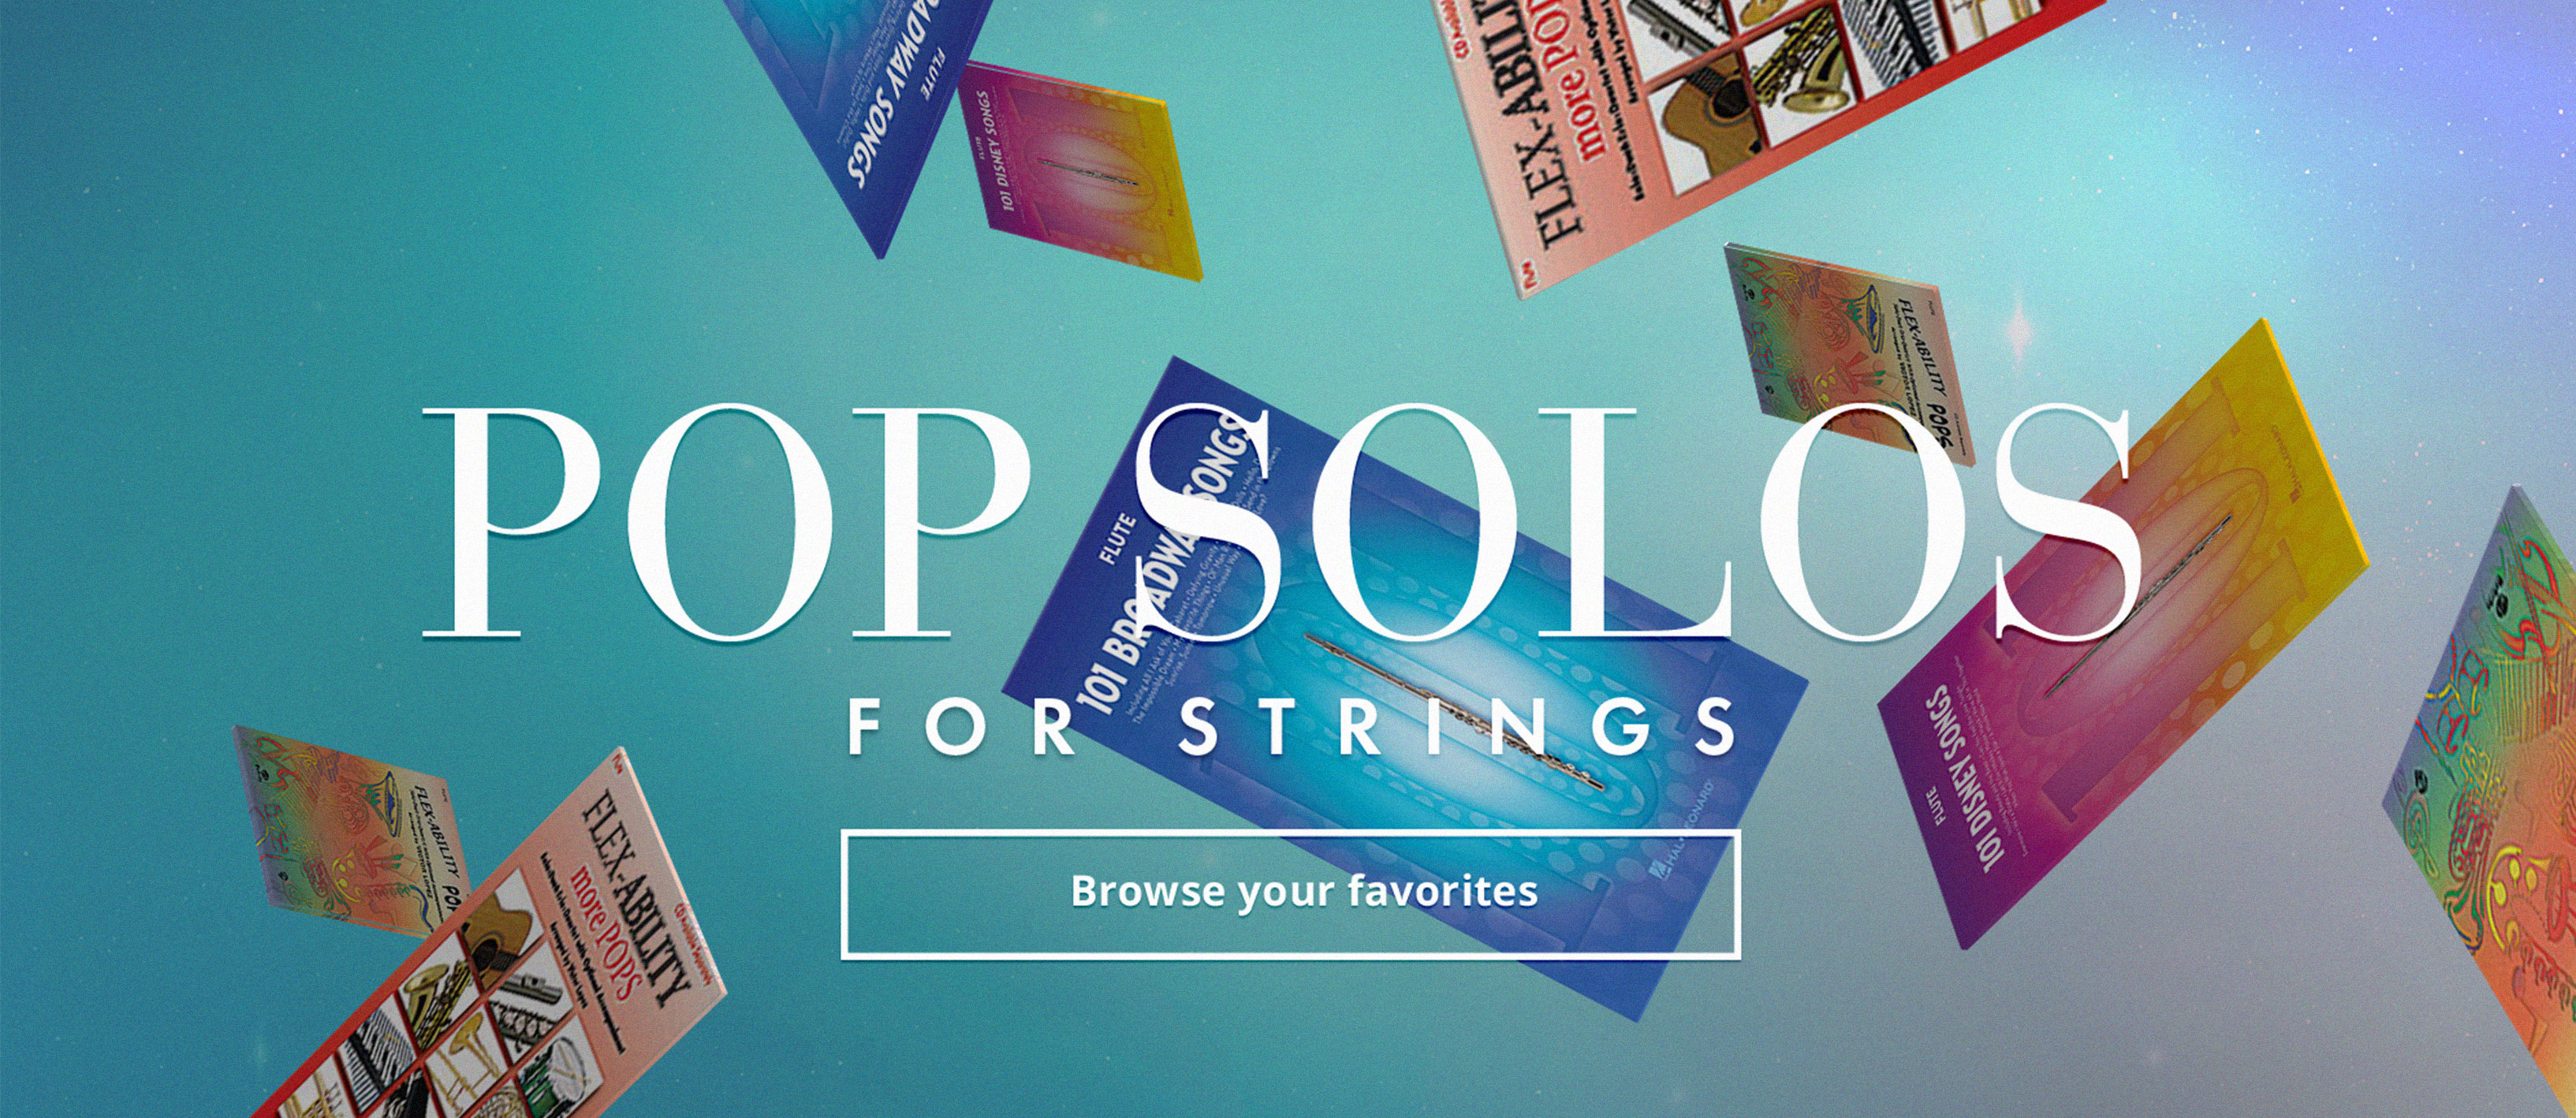 Shop pop solo music for strings.